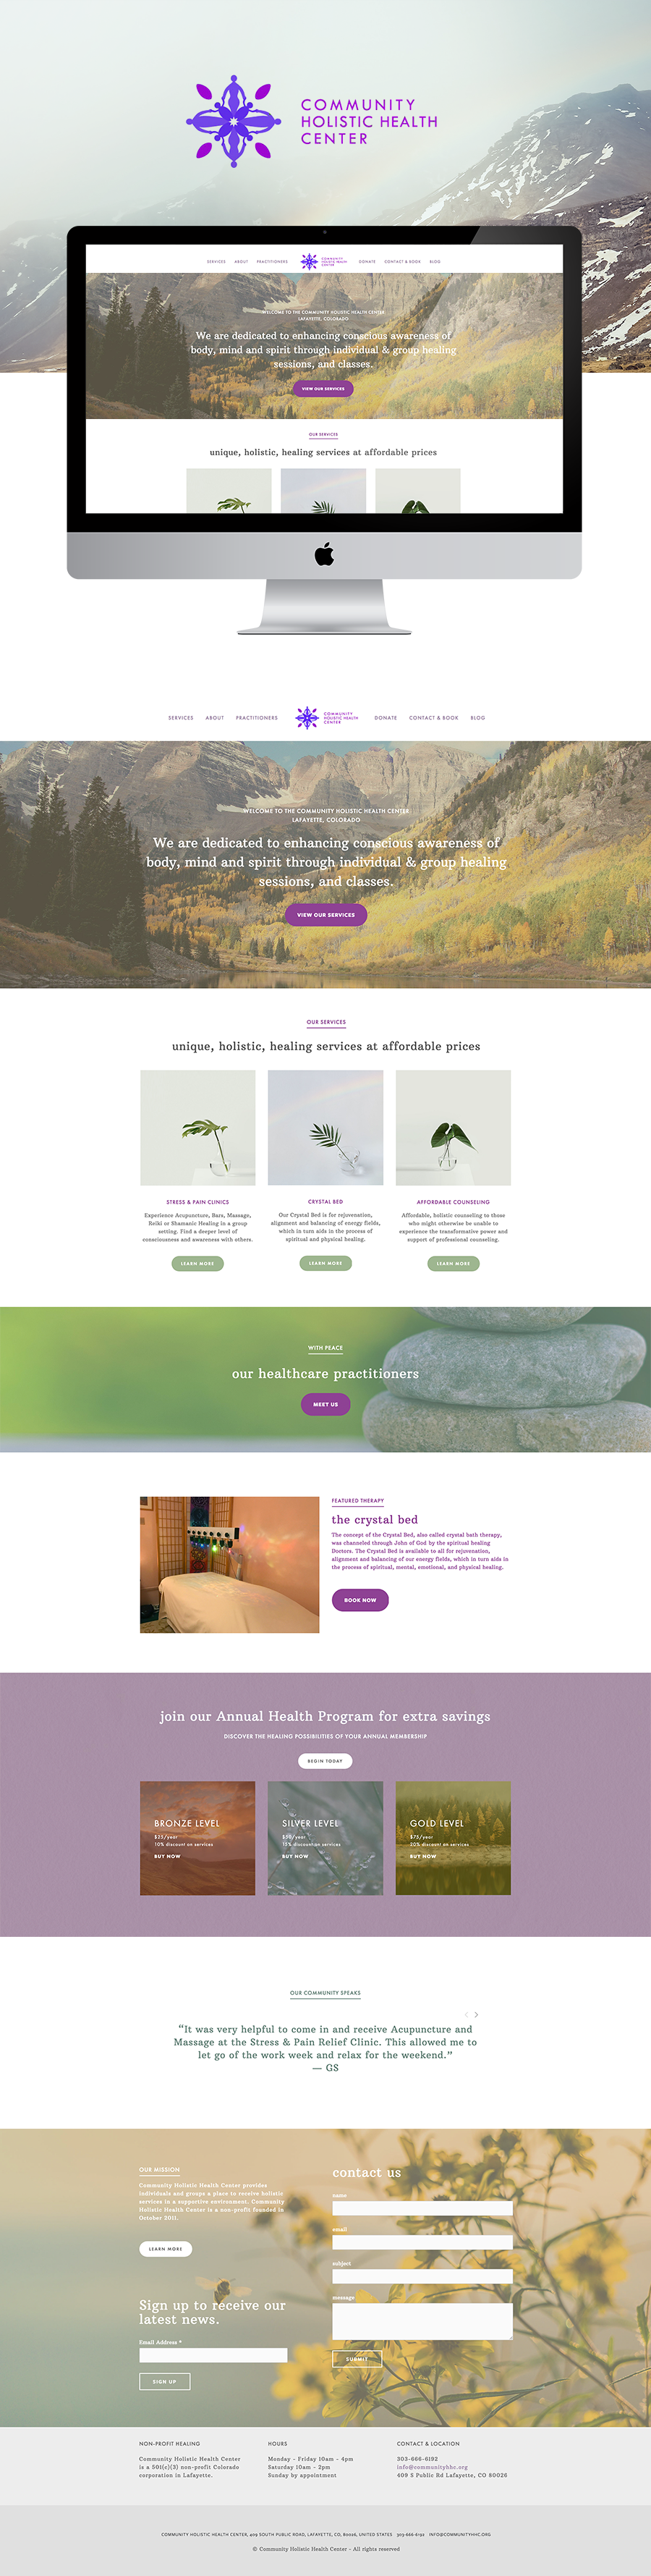 modern-squarespace-website-by-courtney-oliver-community-holistic-health-center.png